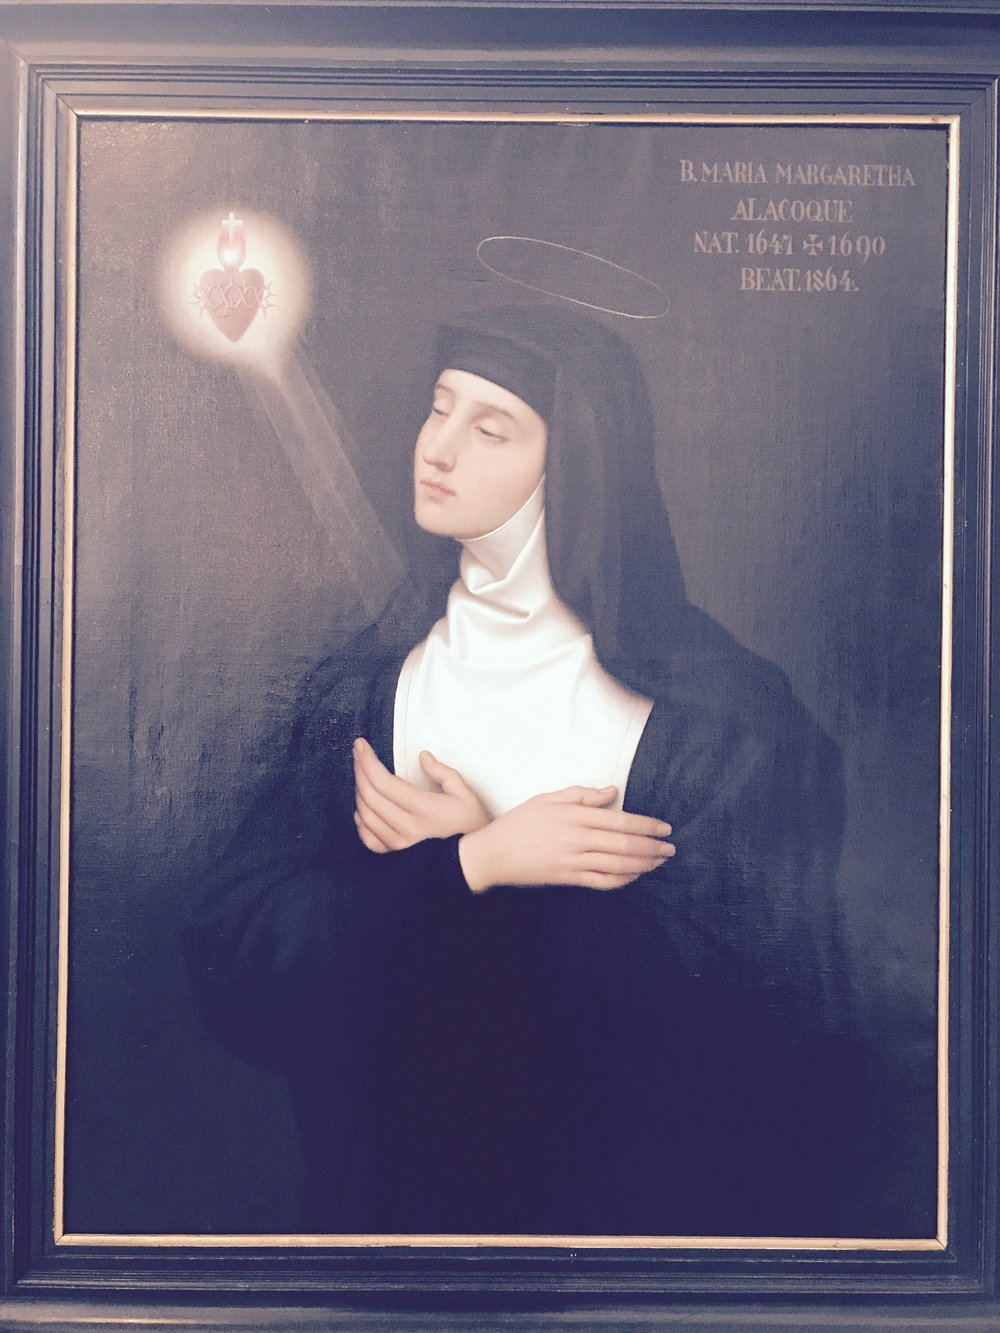 painting of Margareta Maria Alacoque, a French 17th century nun and mystic